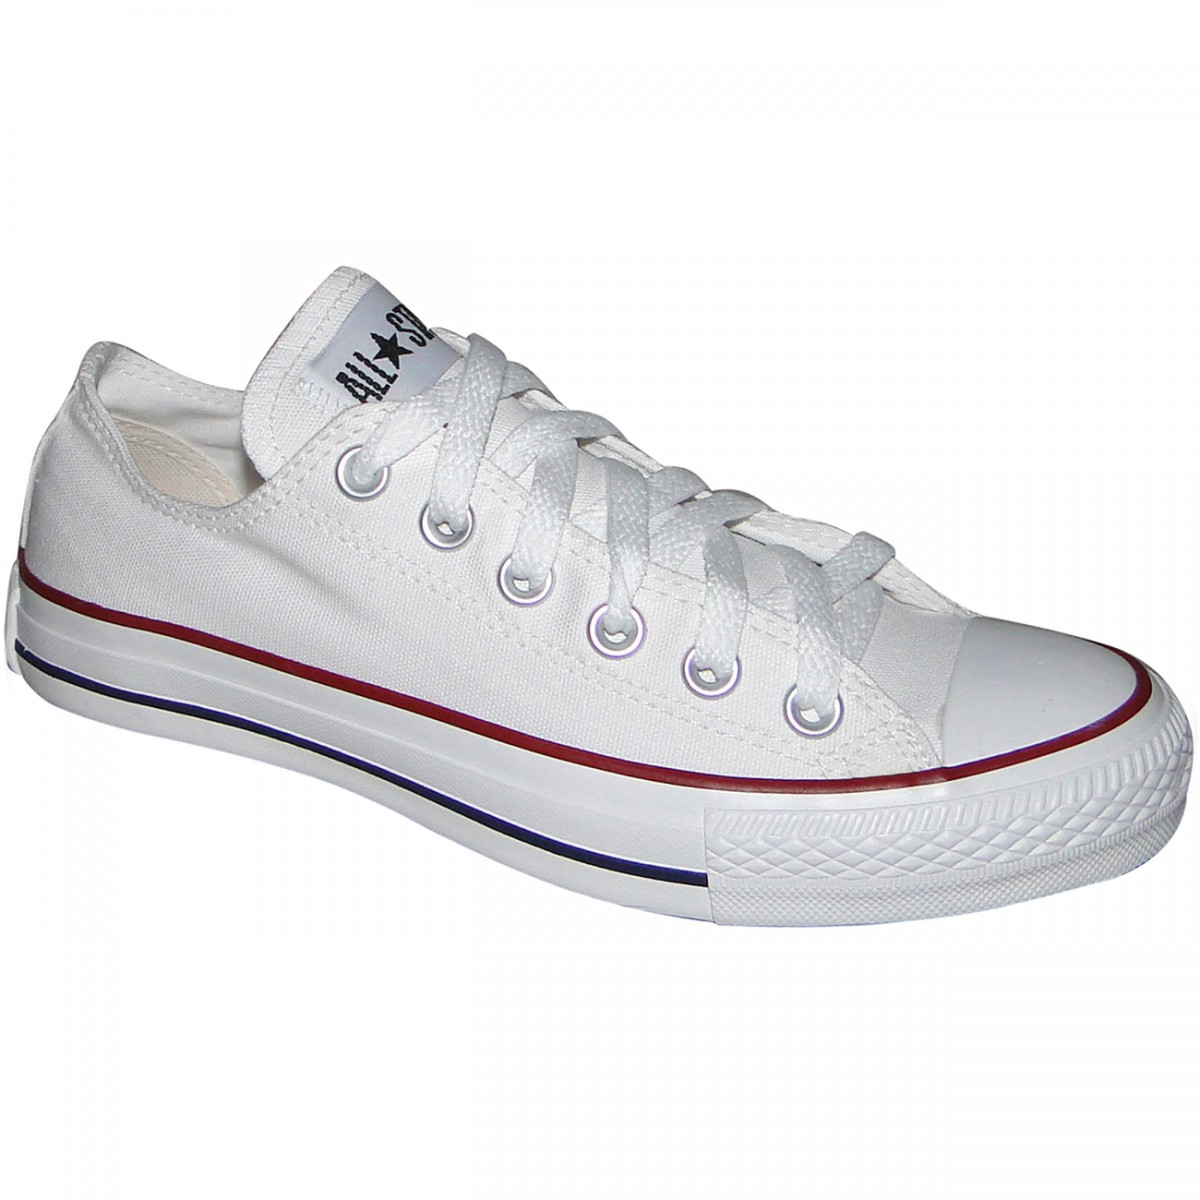 a5a993a91e TENIS ALL STAR CONVERSE CORE CT114002 - BRANCO - Chuteira Nike ...